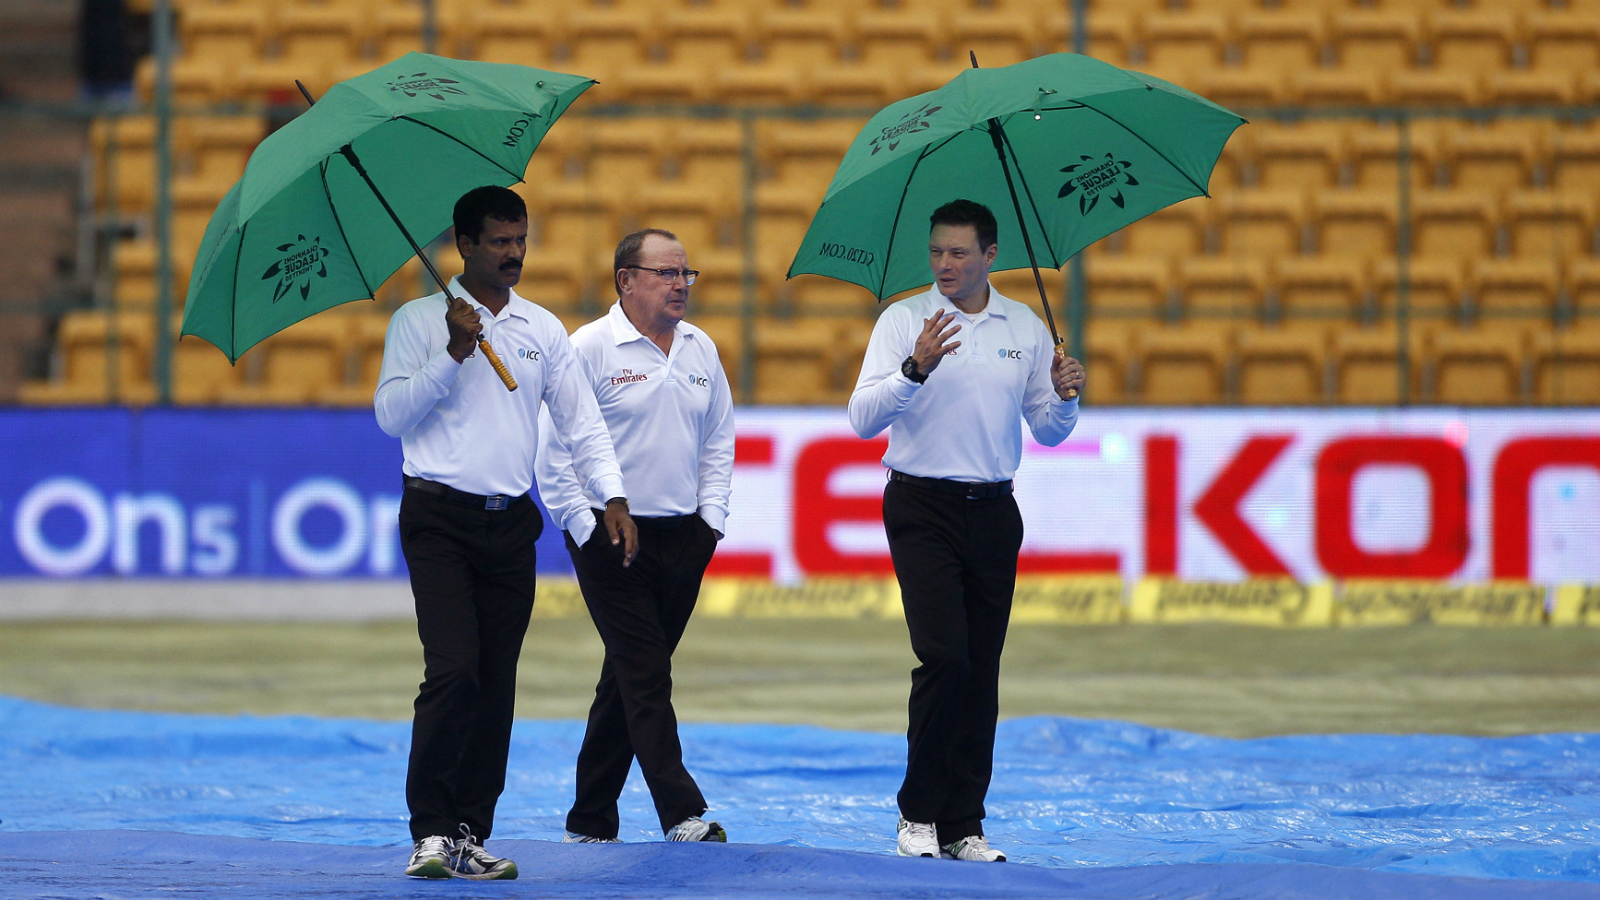 Umpires Ian Gould, center, Richard Allan Kettleborough, right, and C.K. Nandan inspect the outfield before calling off play for the fourth day of second cricket test match between India and South Africa due to rain in Bangalore, India, Tuesday, Nov. 17, 2015. The second test between India and South Africa looked set for a draw Tuesday after no play was possible on the fourth day. (AP Photo/Aijaz Rahi)